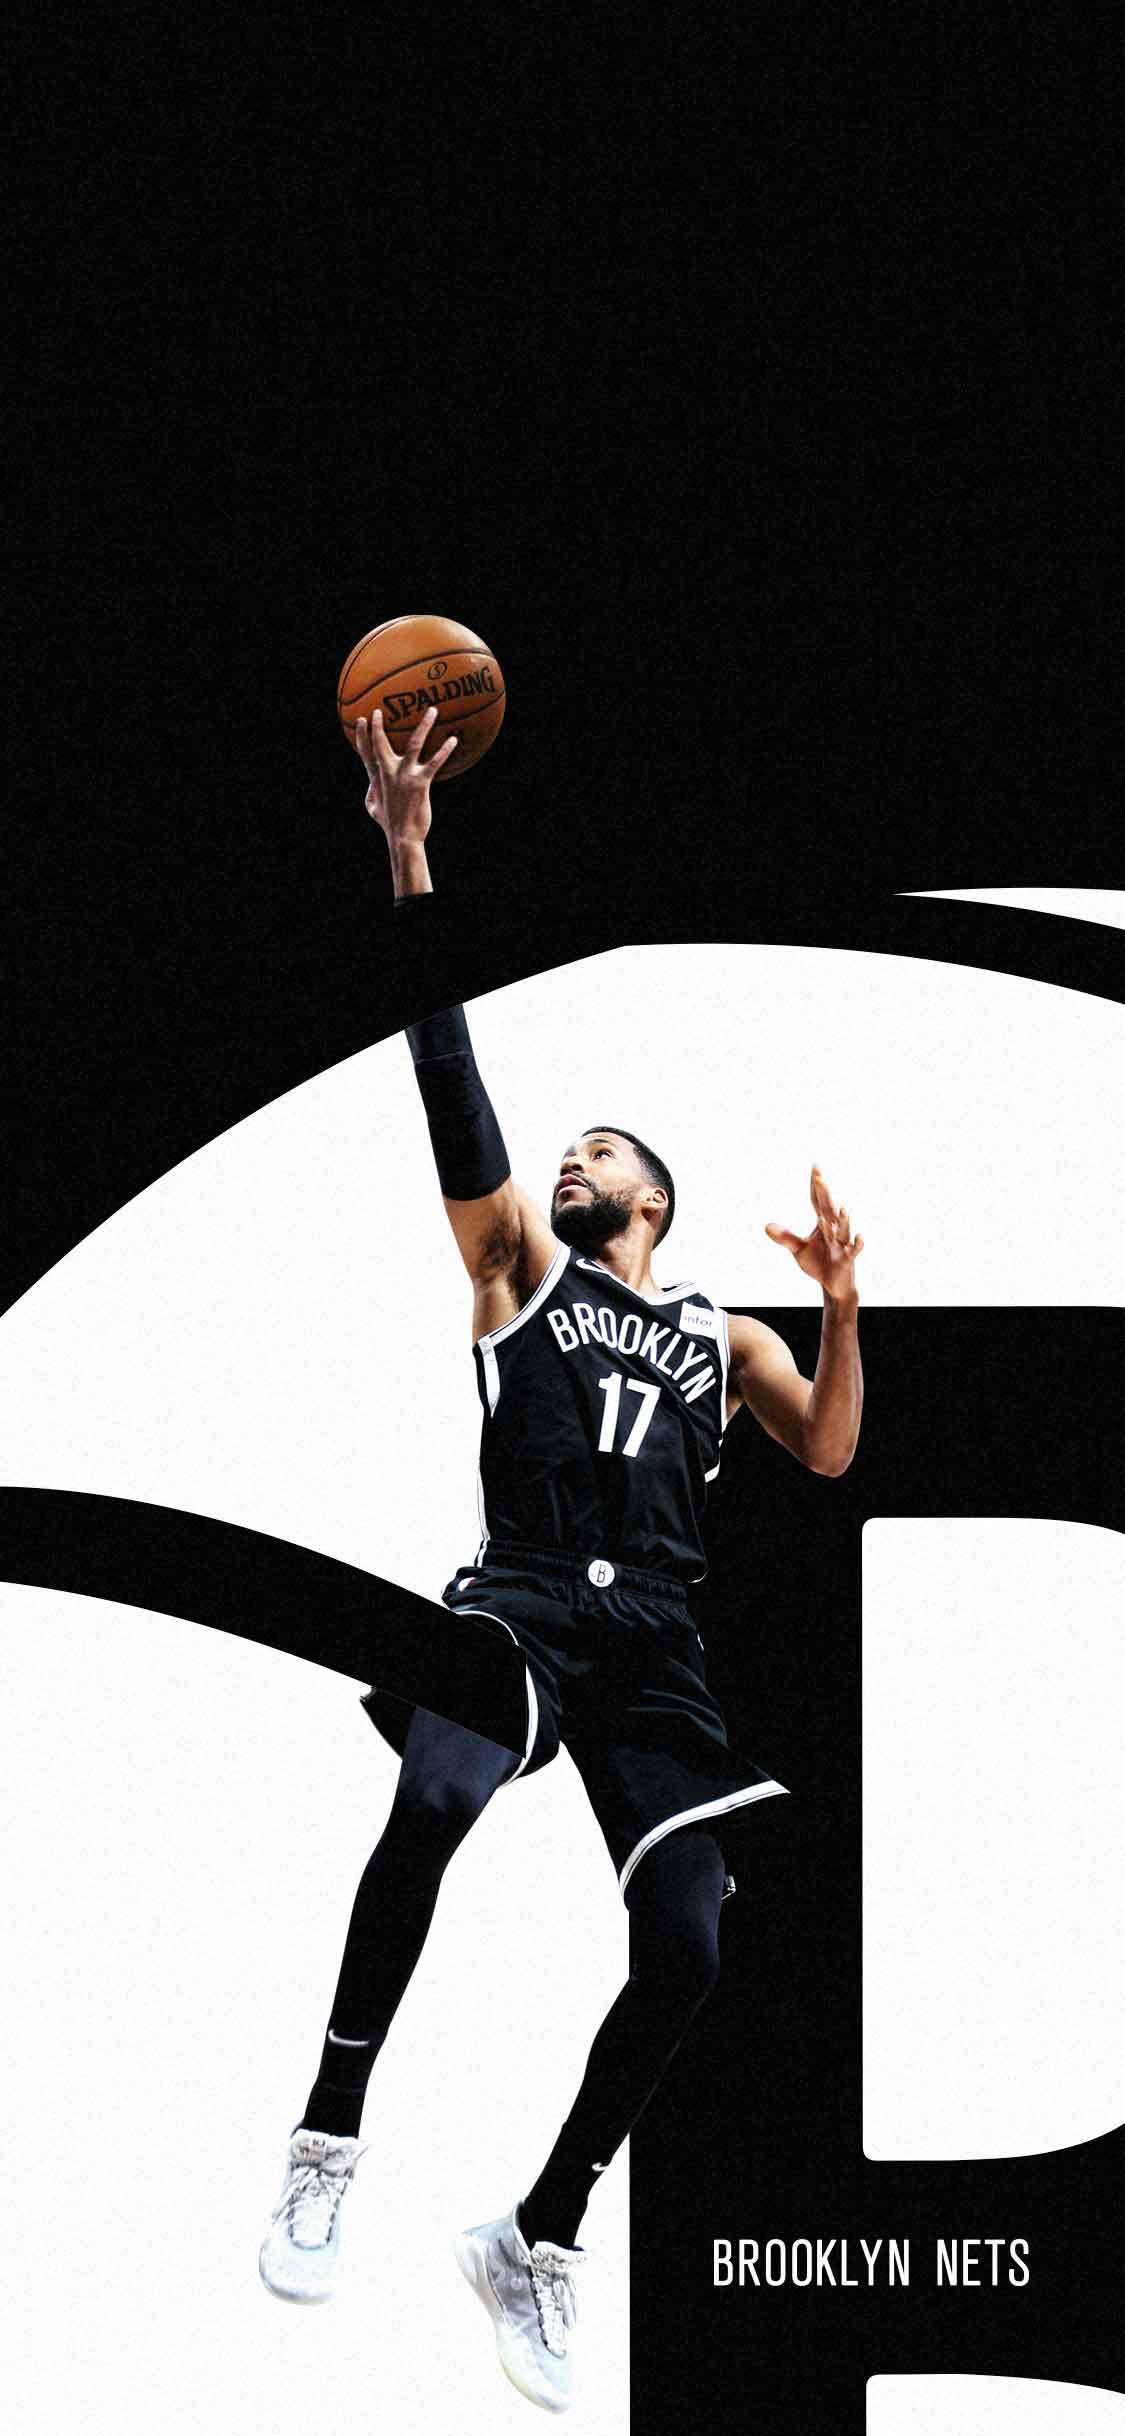 Mobile Wallpapers Brooklyn Nets